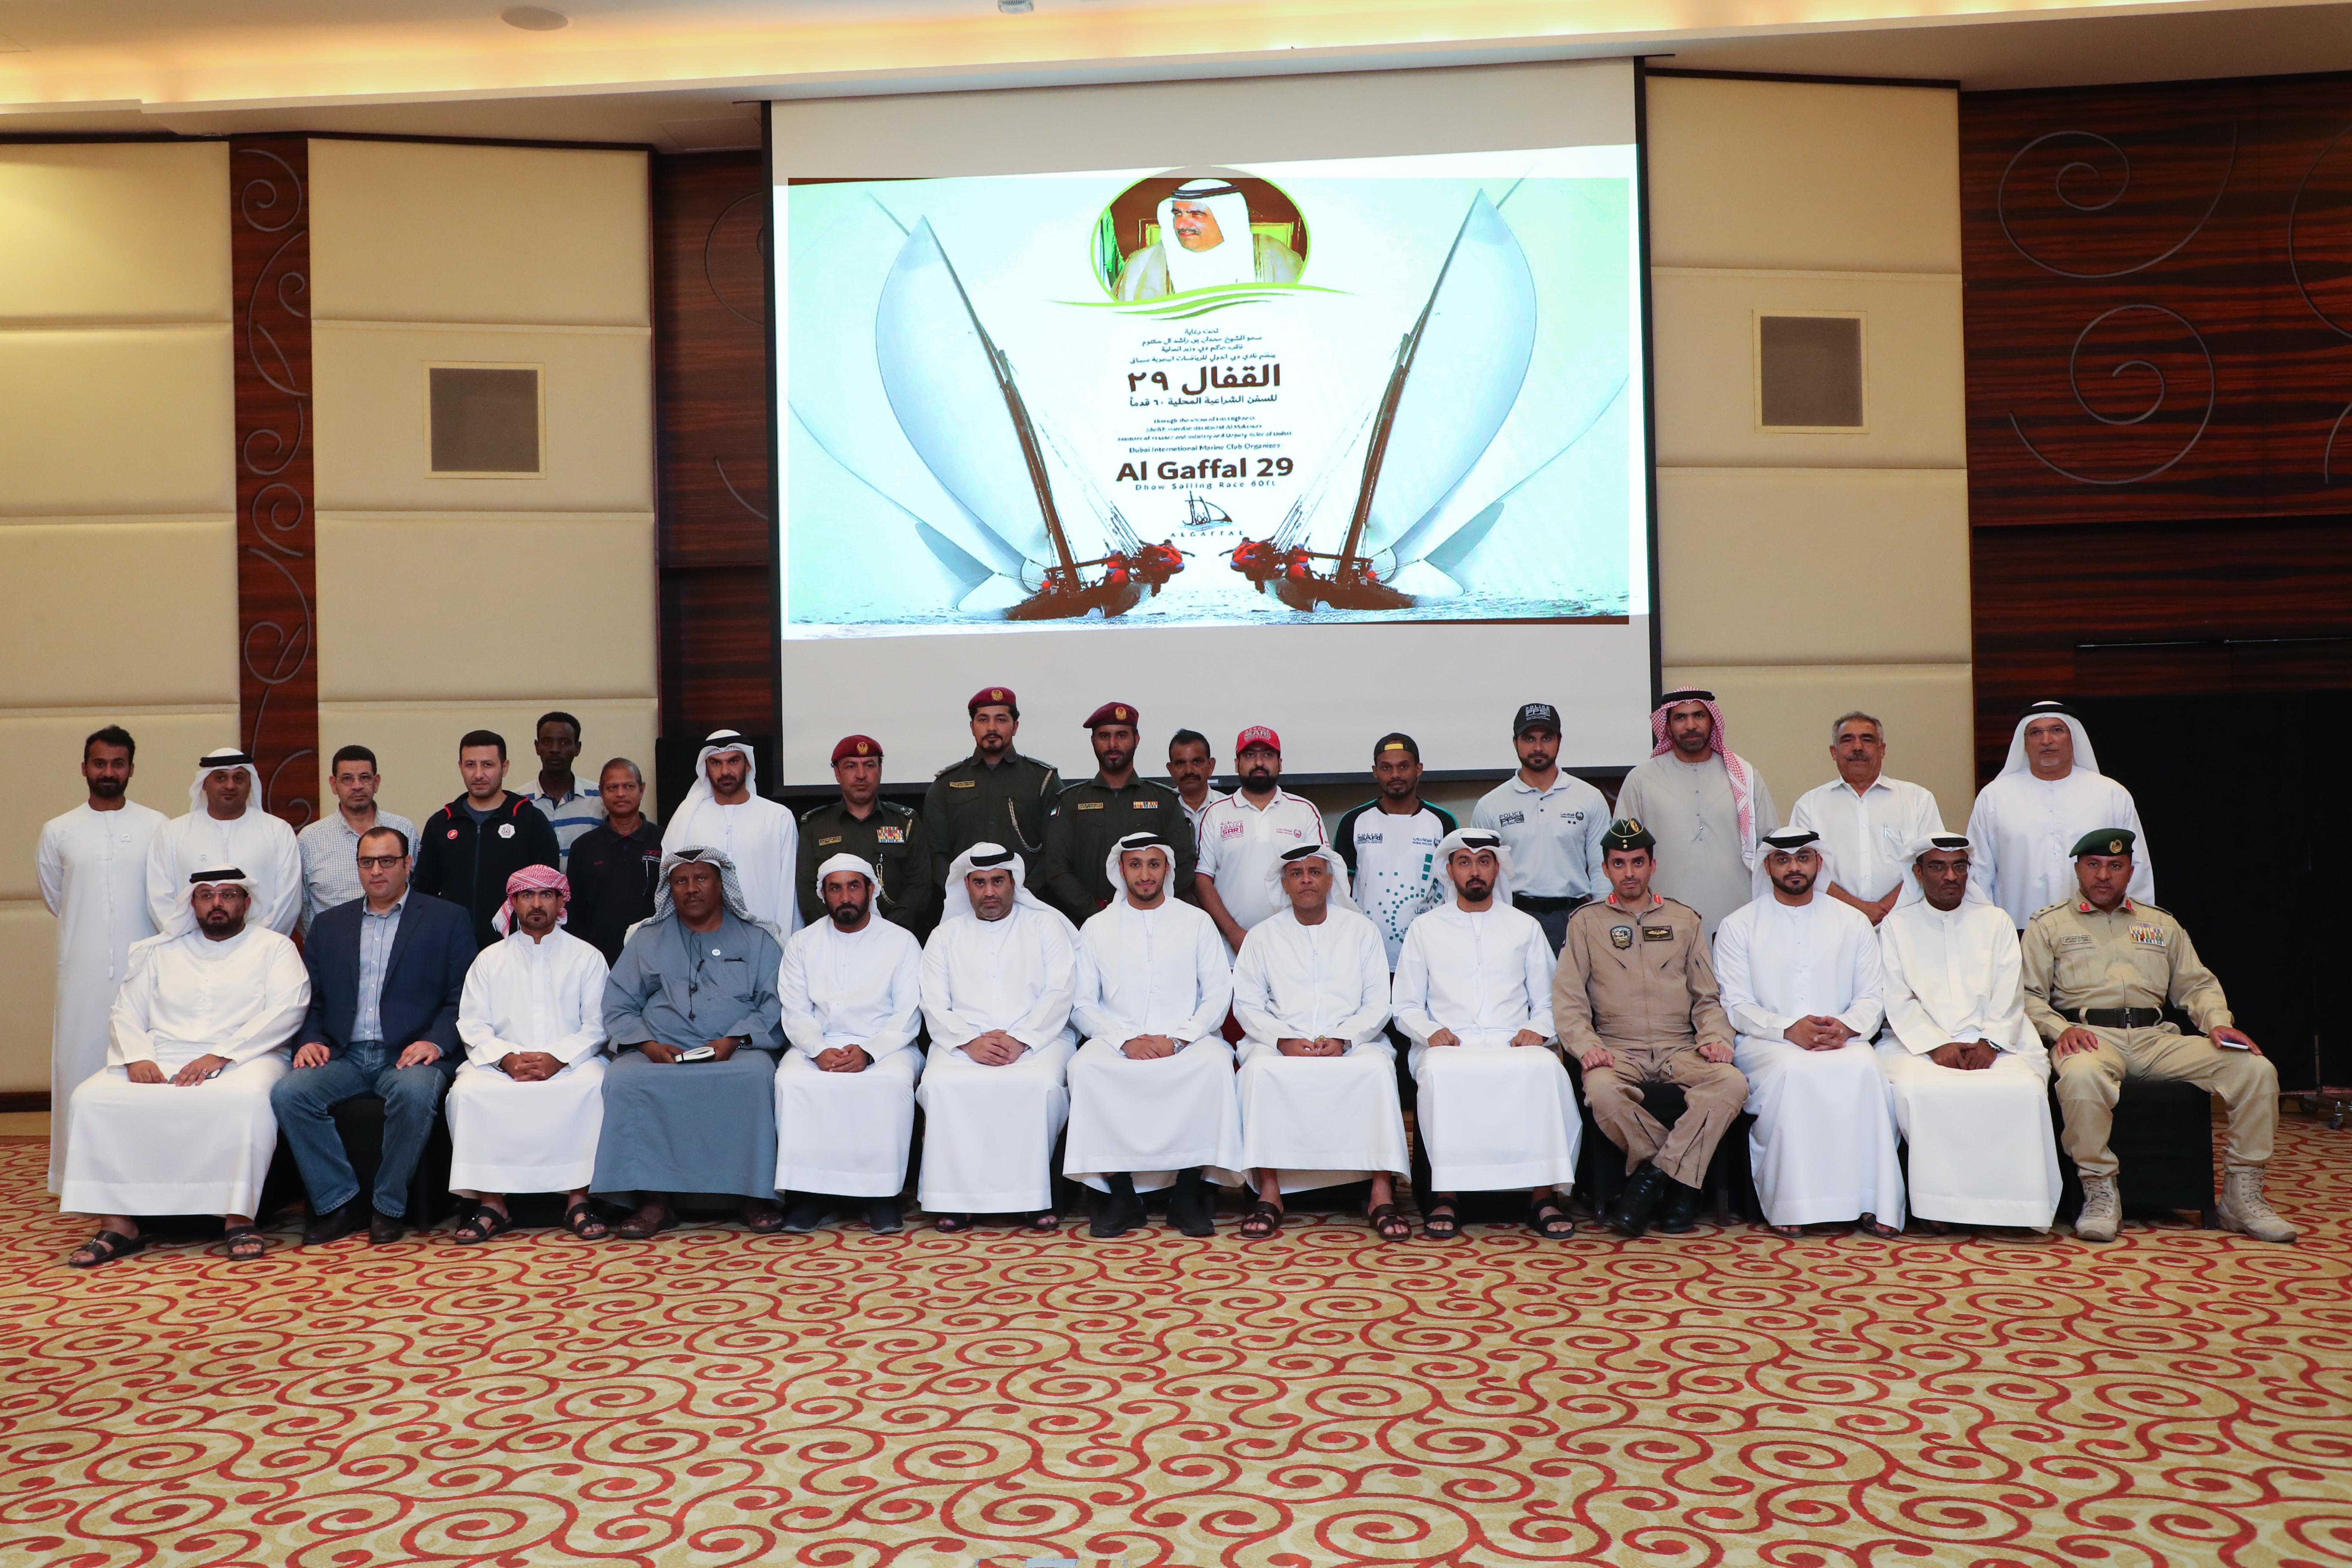 Preparations for the 29th Al Gaffal Race started